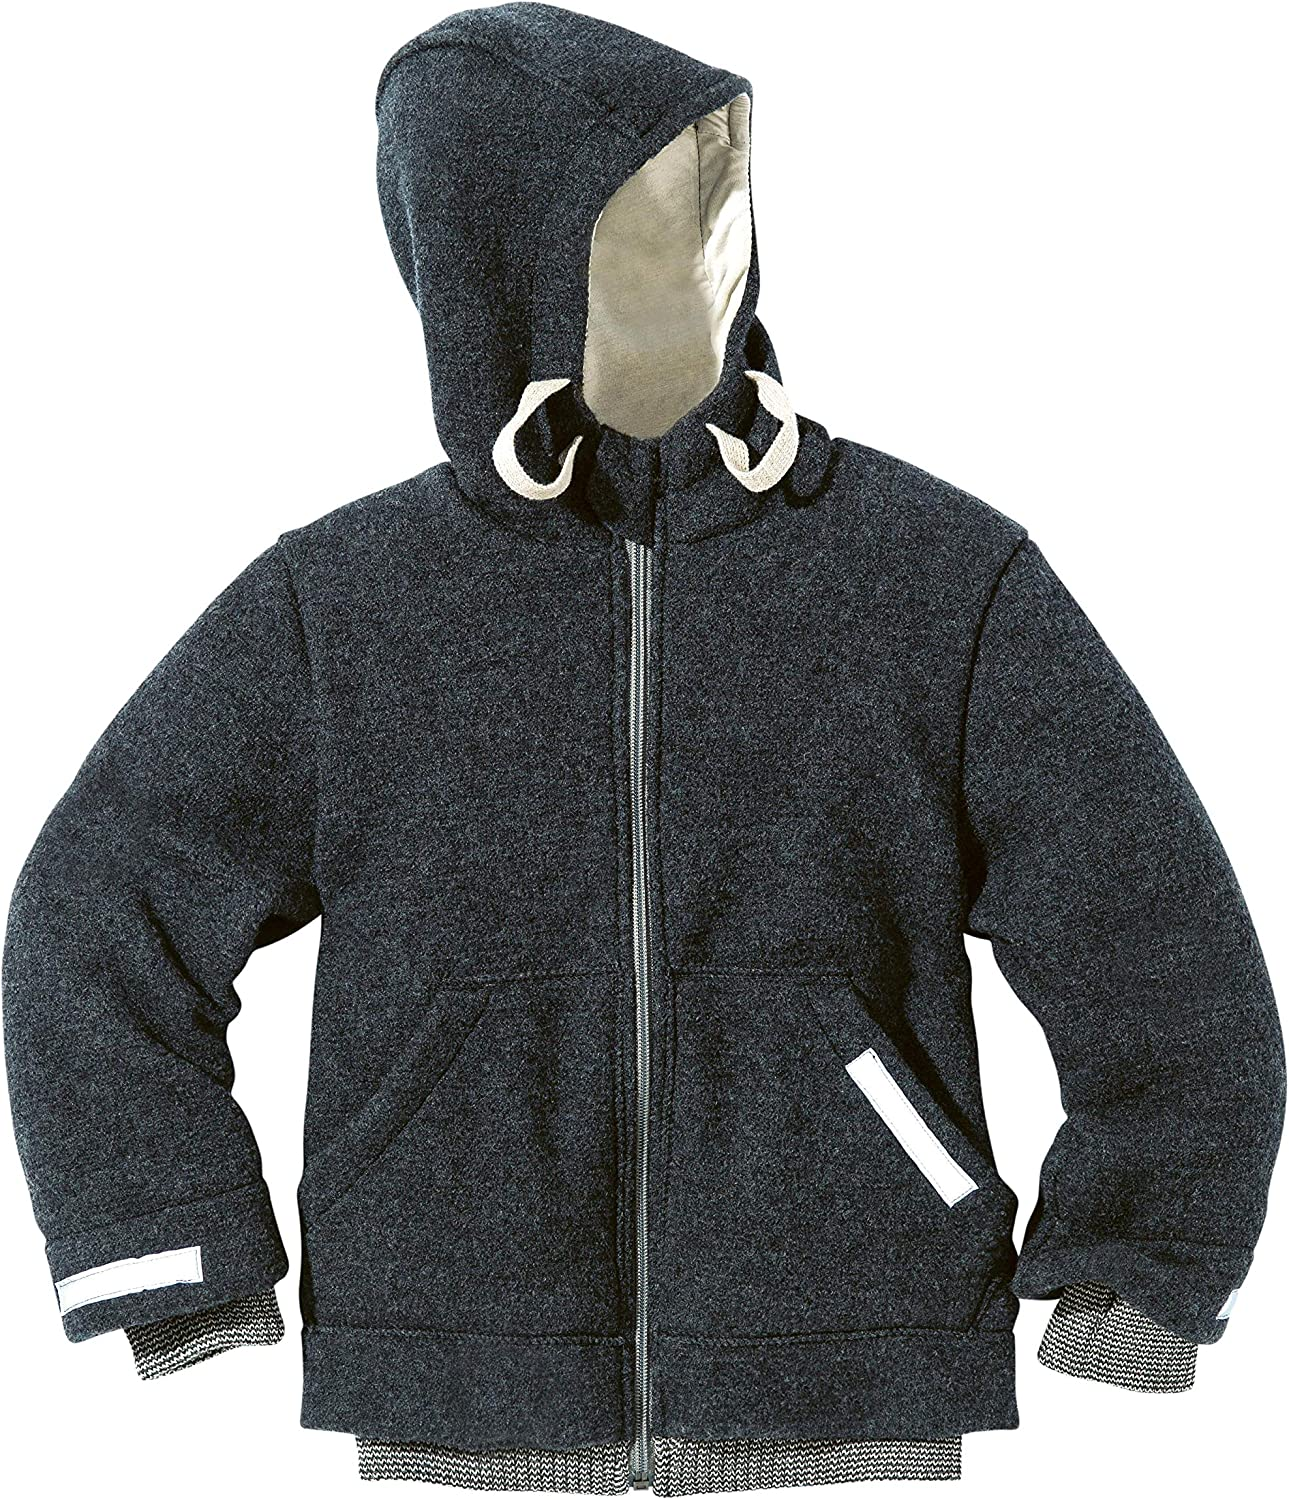 Disana Outdoor Jacket in Anthracite Rose 100/% Organic Merino Wool Made in Germany